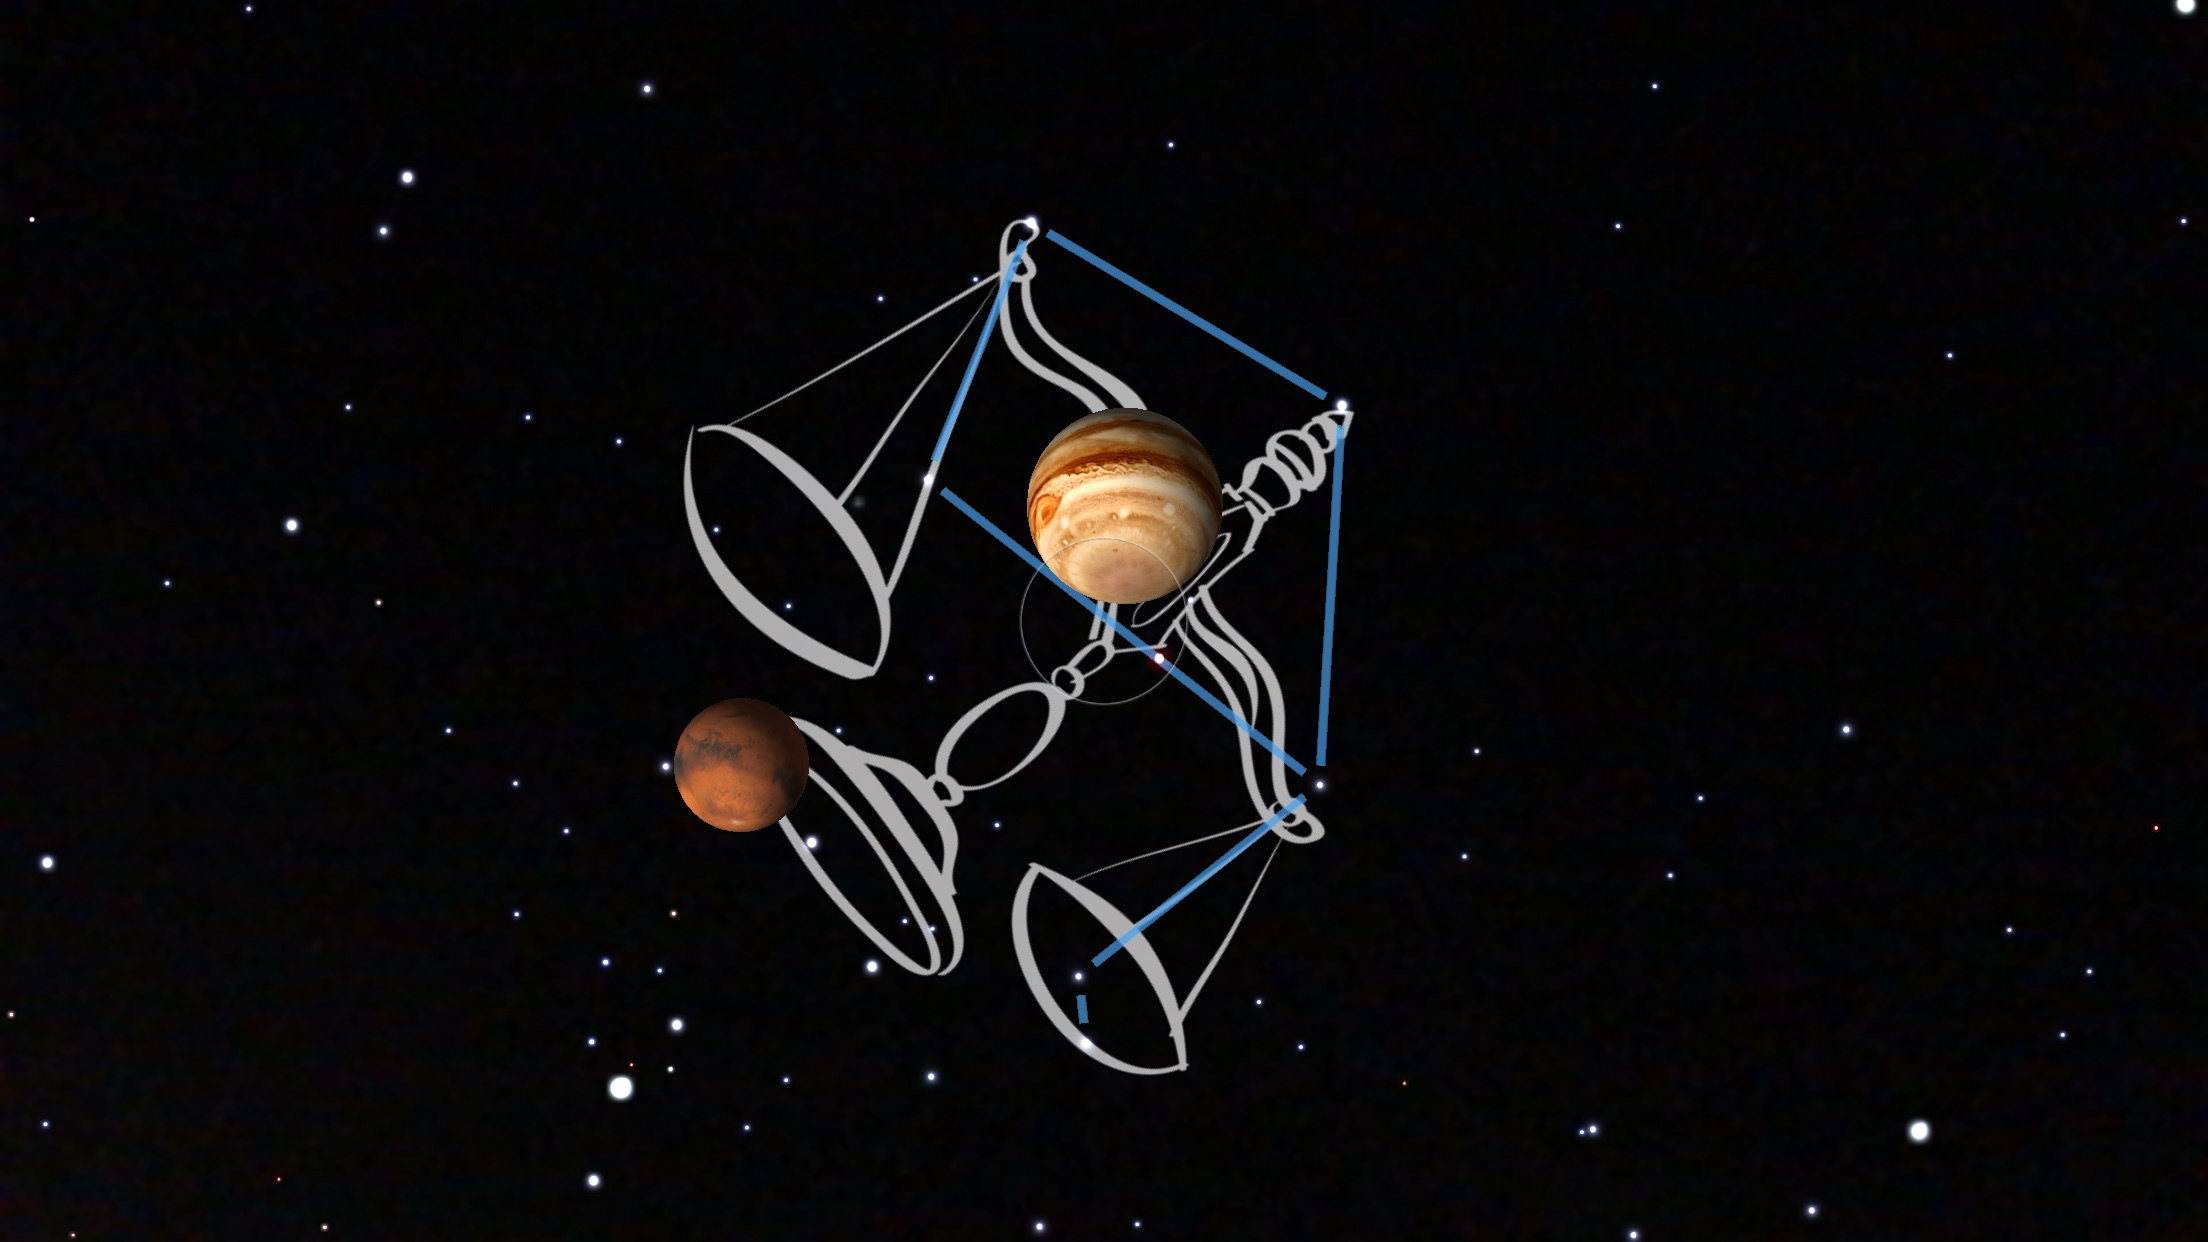 Jan 31 2018 The Scales Jupiter and Mars